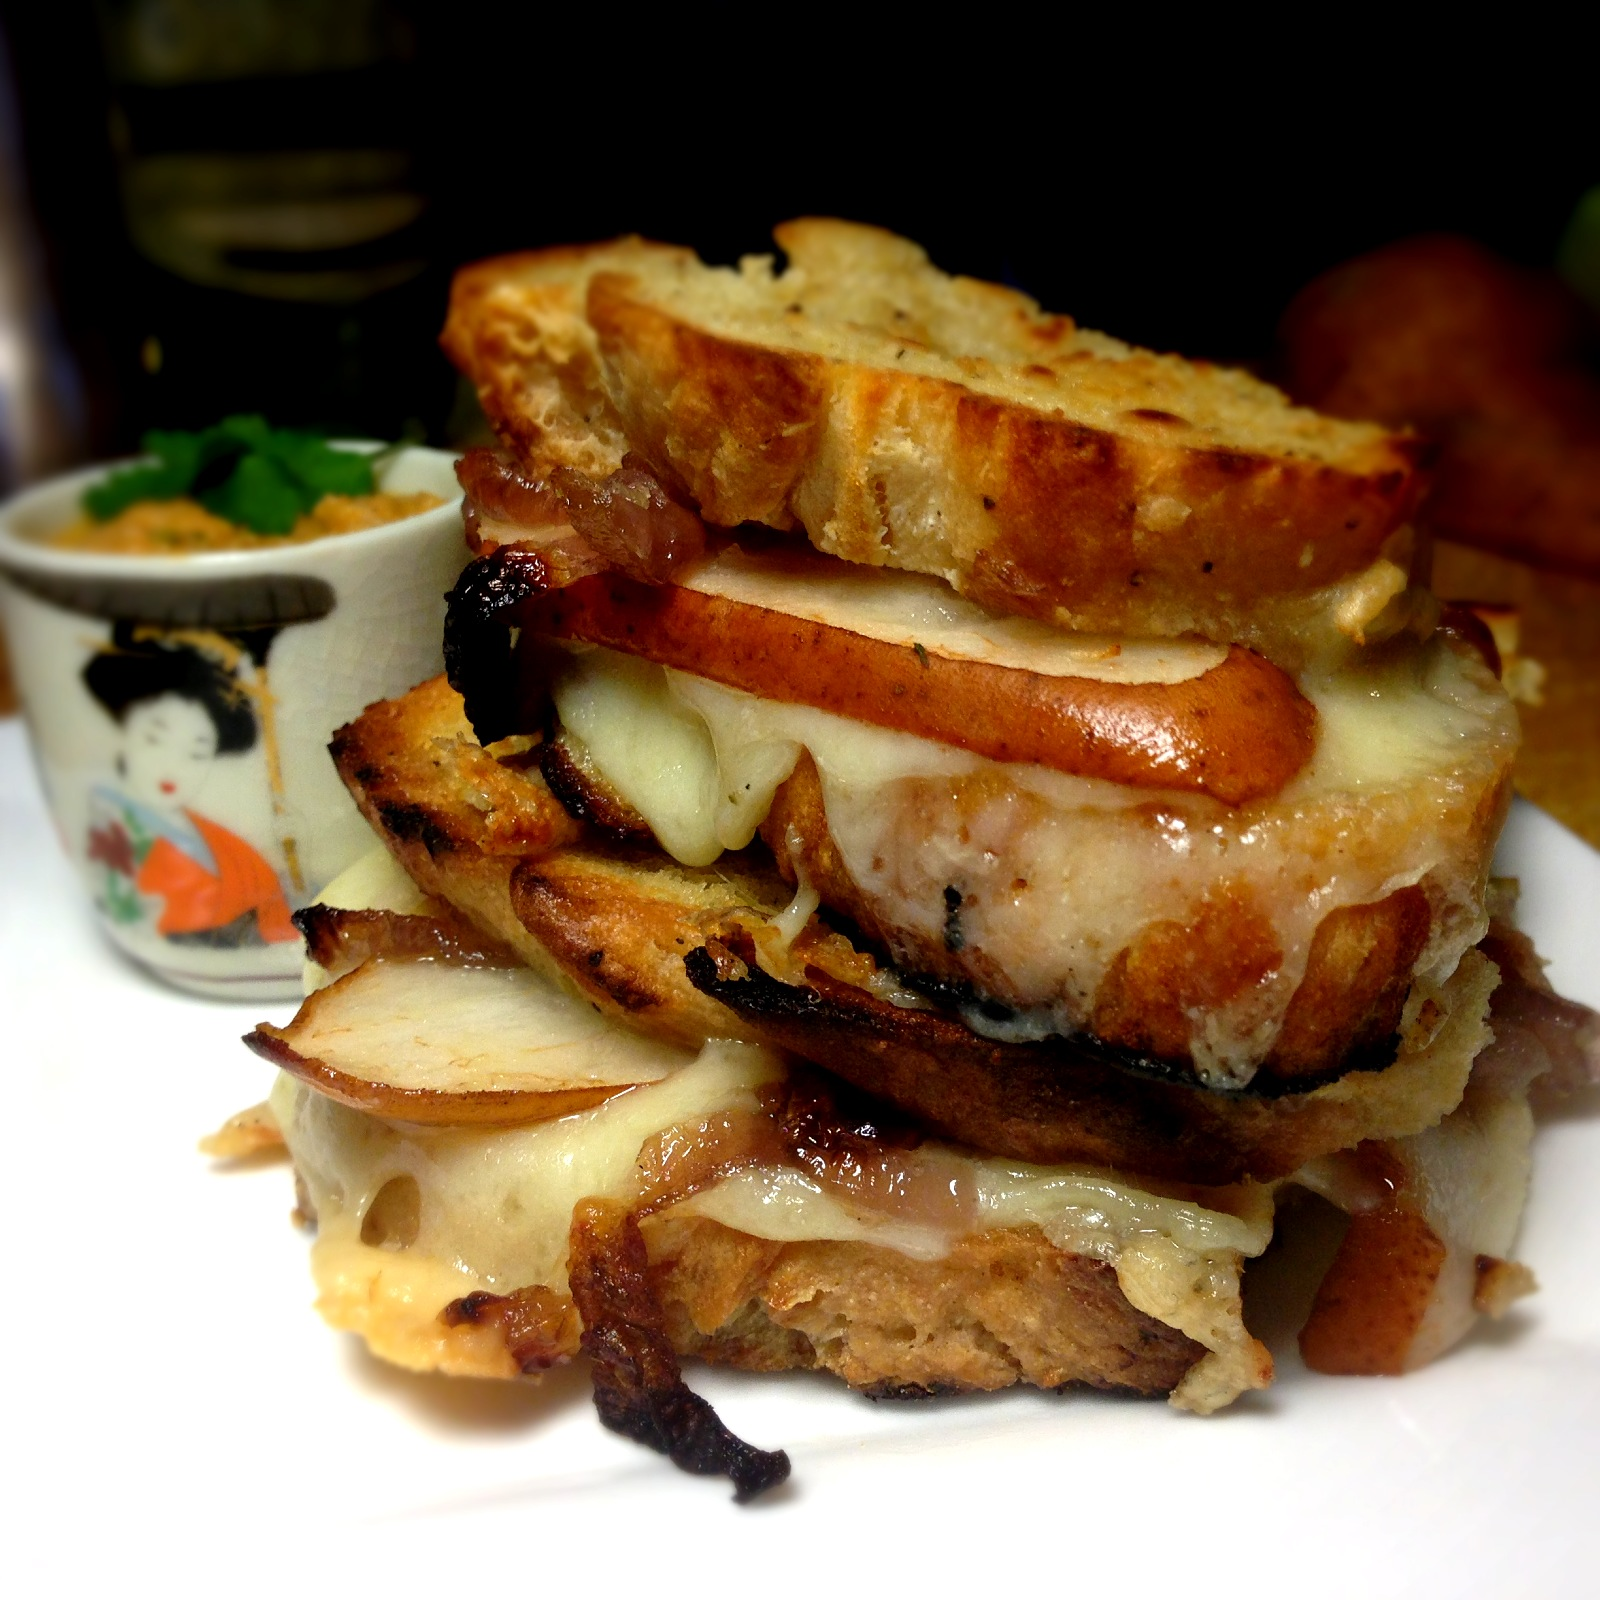 Pear, Gruyere & Caramelized Onion Grilled Cheese Sandwich with a Shot ...